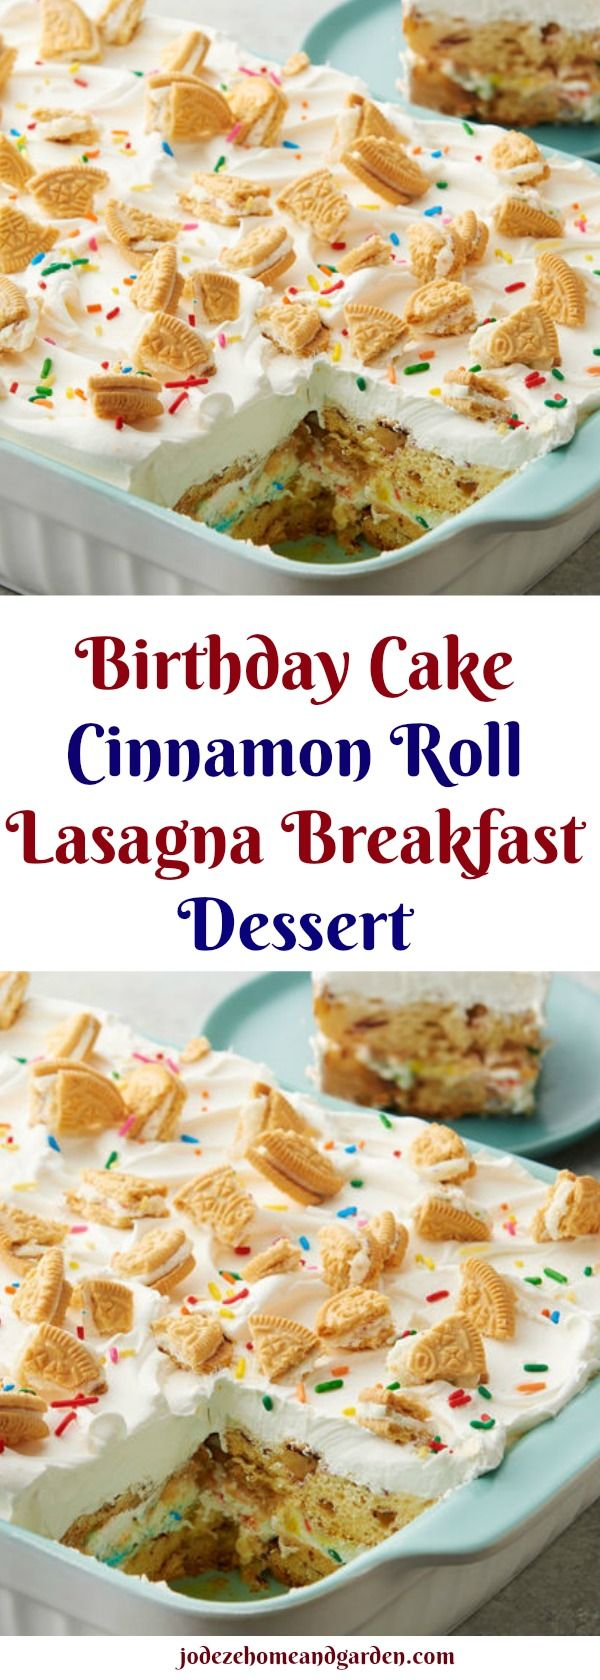 Birthday Cake Cinnamon Roll Lasagna Breakfast Dessert Recipe